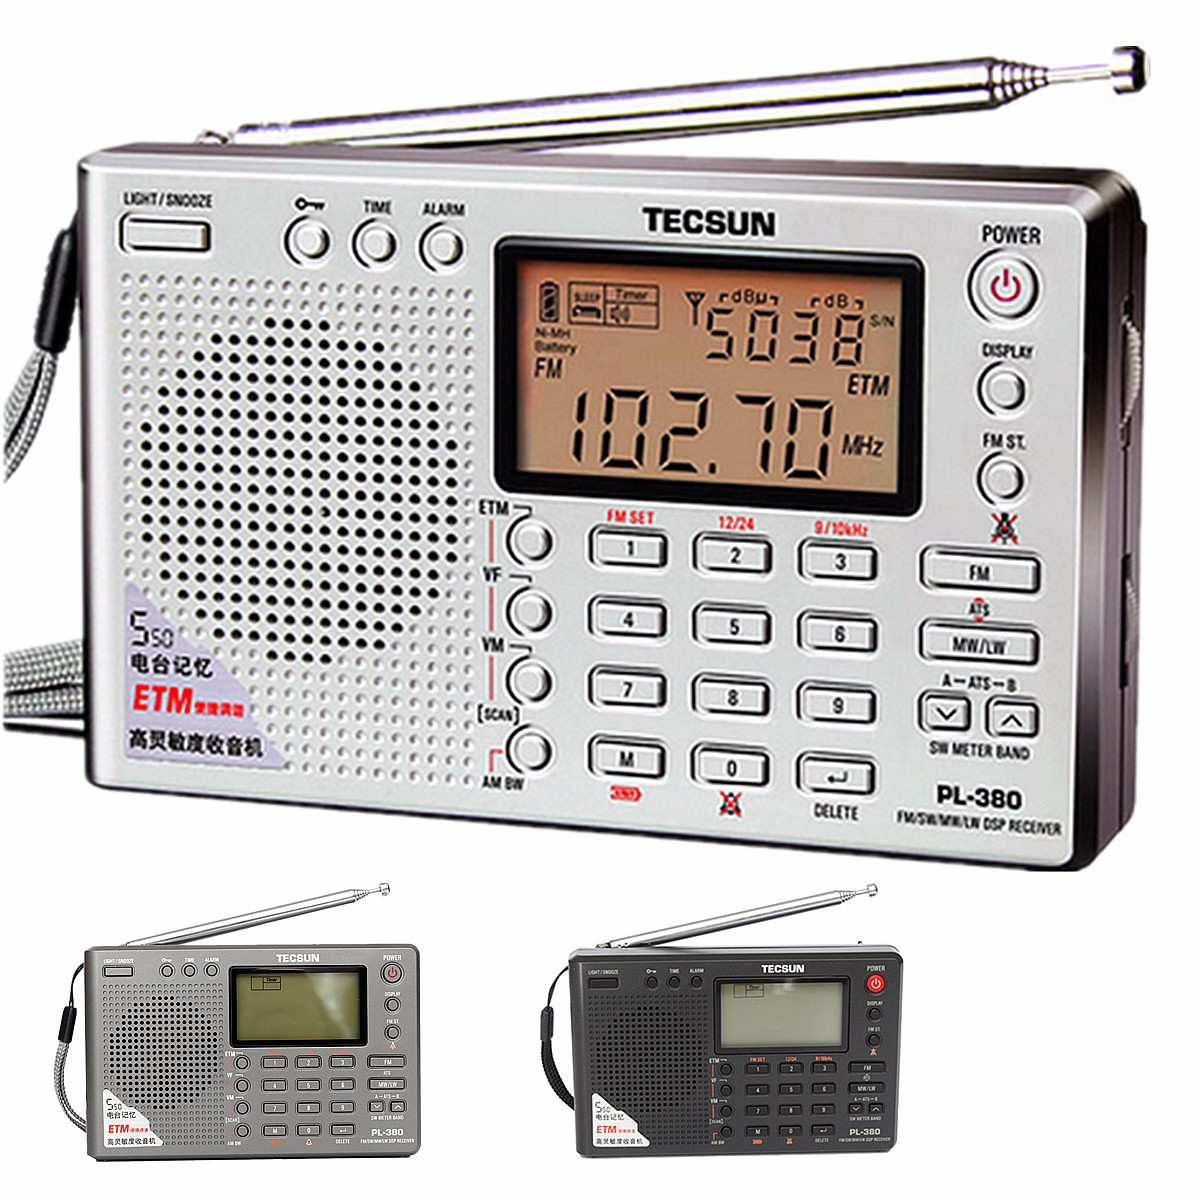 TECSUN PL-380 DSP PLL FM MW SW LW Digital Stereo Radio World-Band Receiver New 7 Tuning Mode Selectable Silver Gray Black tecsun pl 600 digital tuning full band fm mw sw sbb air pll synthesized stereo radio receiver 4xaa